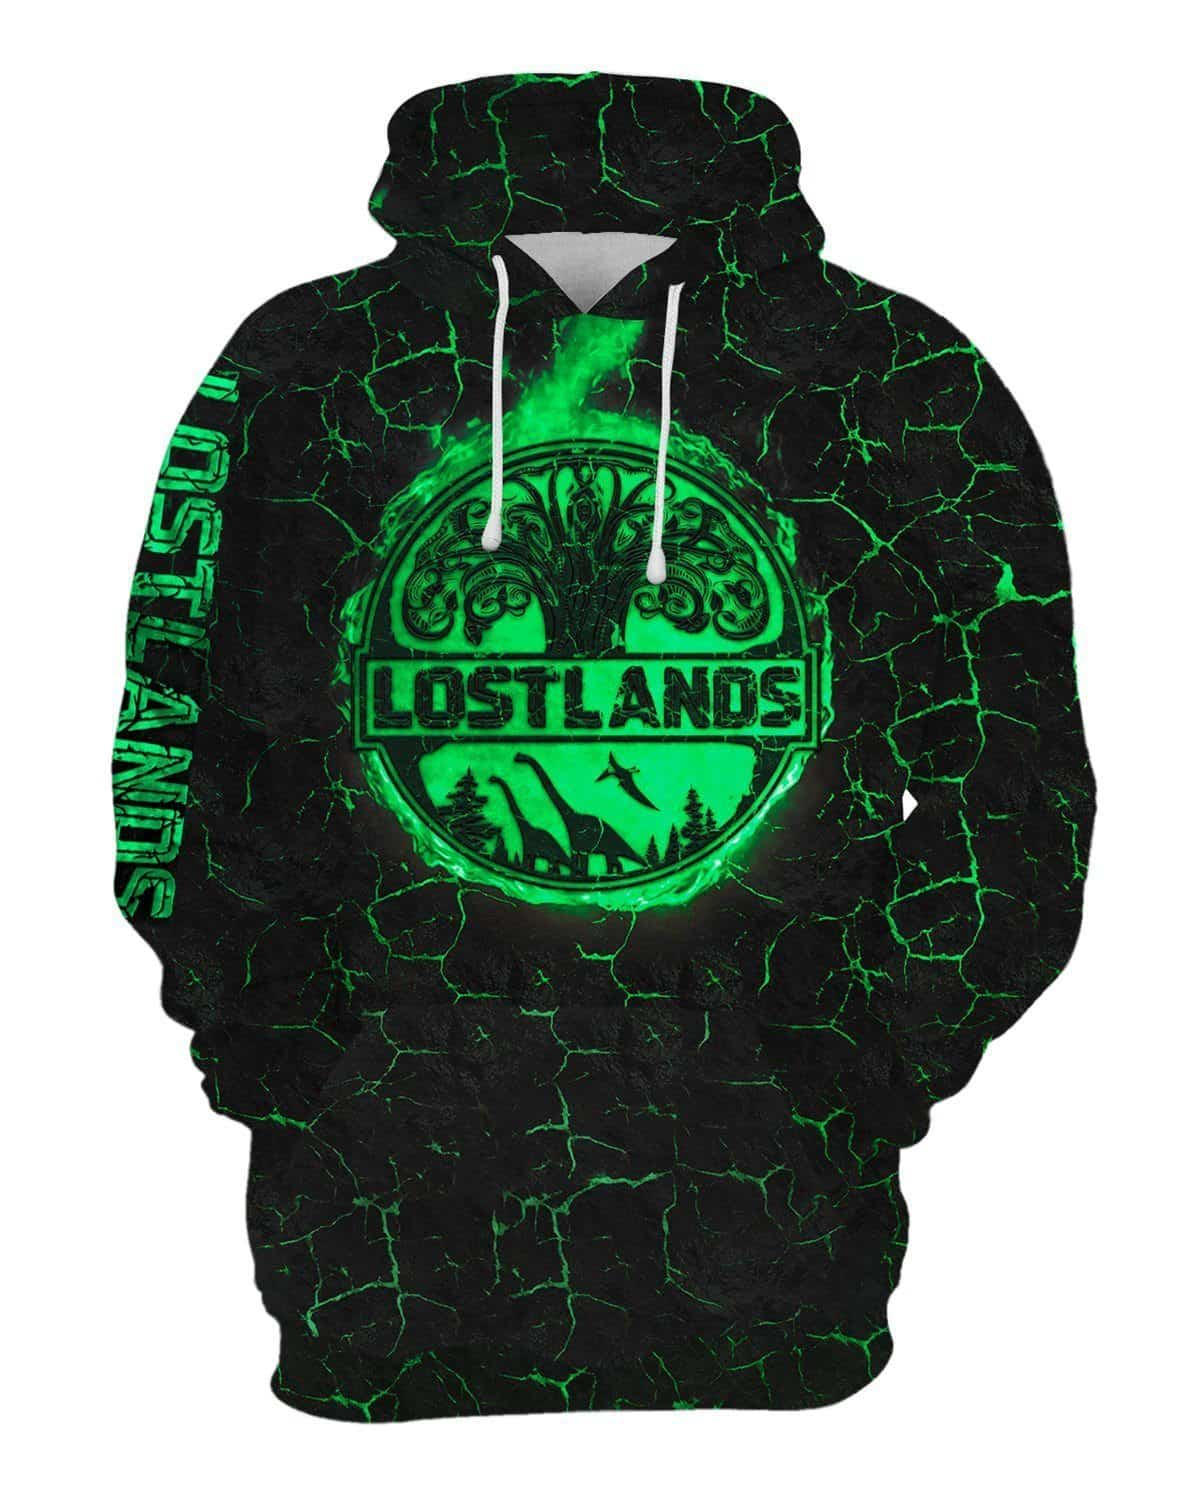 Lost Lands All Over Print Hoodie - Green